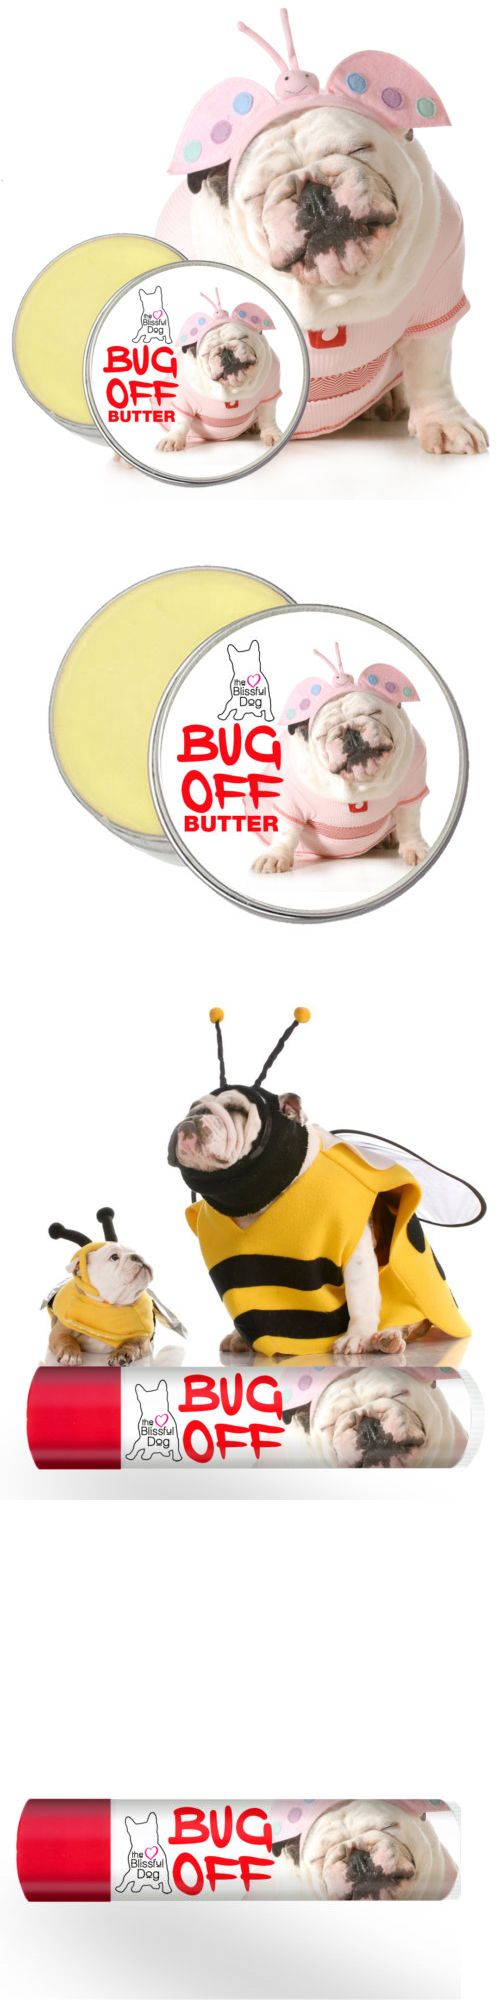 Best 20 bug off ideas on pinterest the bug natural bug skin and coat care 134791 bulldog bug off butter bug banishing balm in tins and vtopaller Images